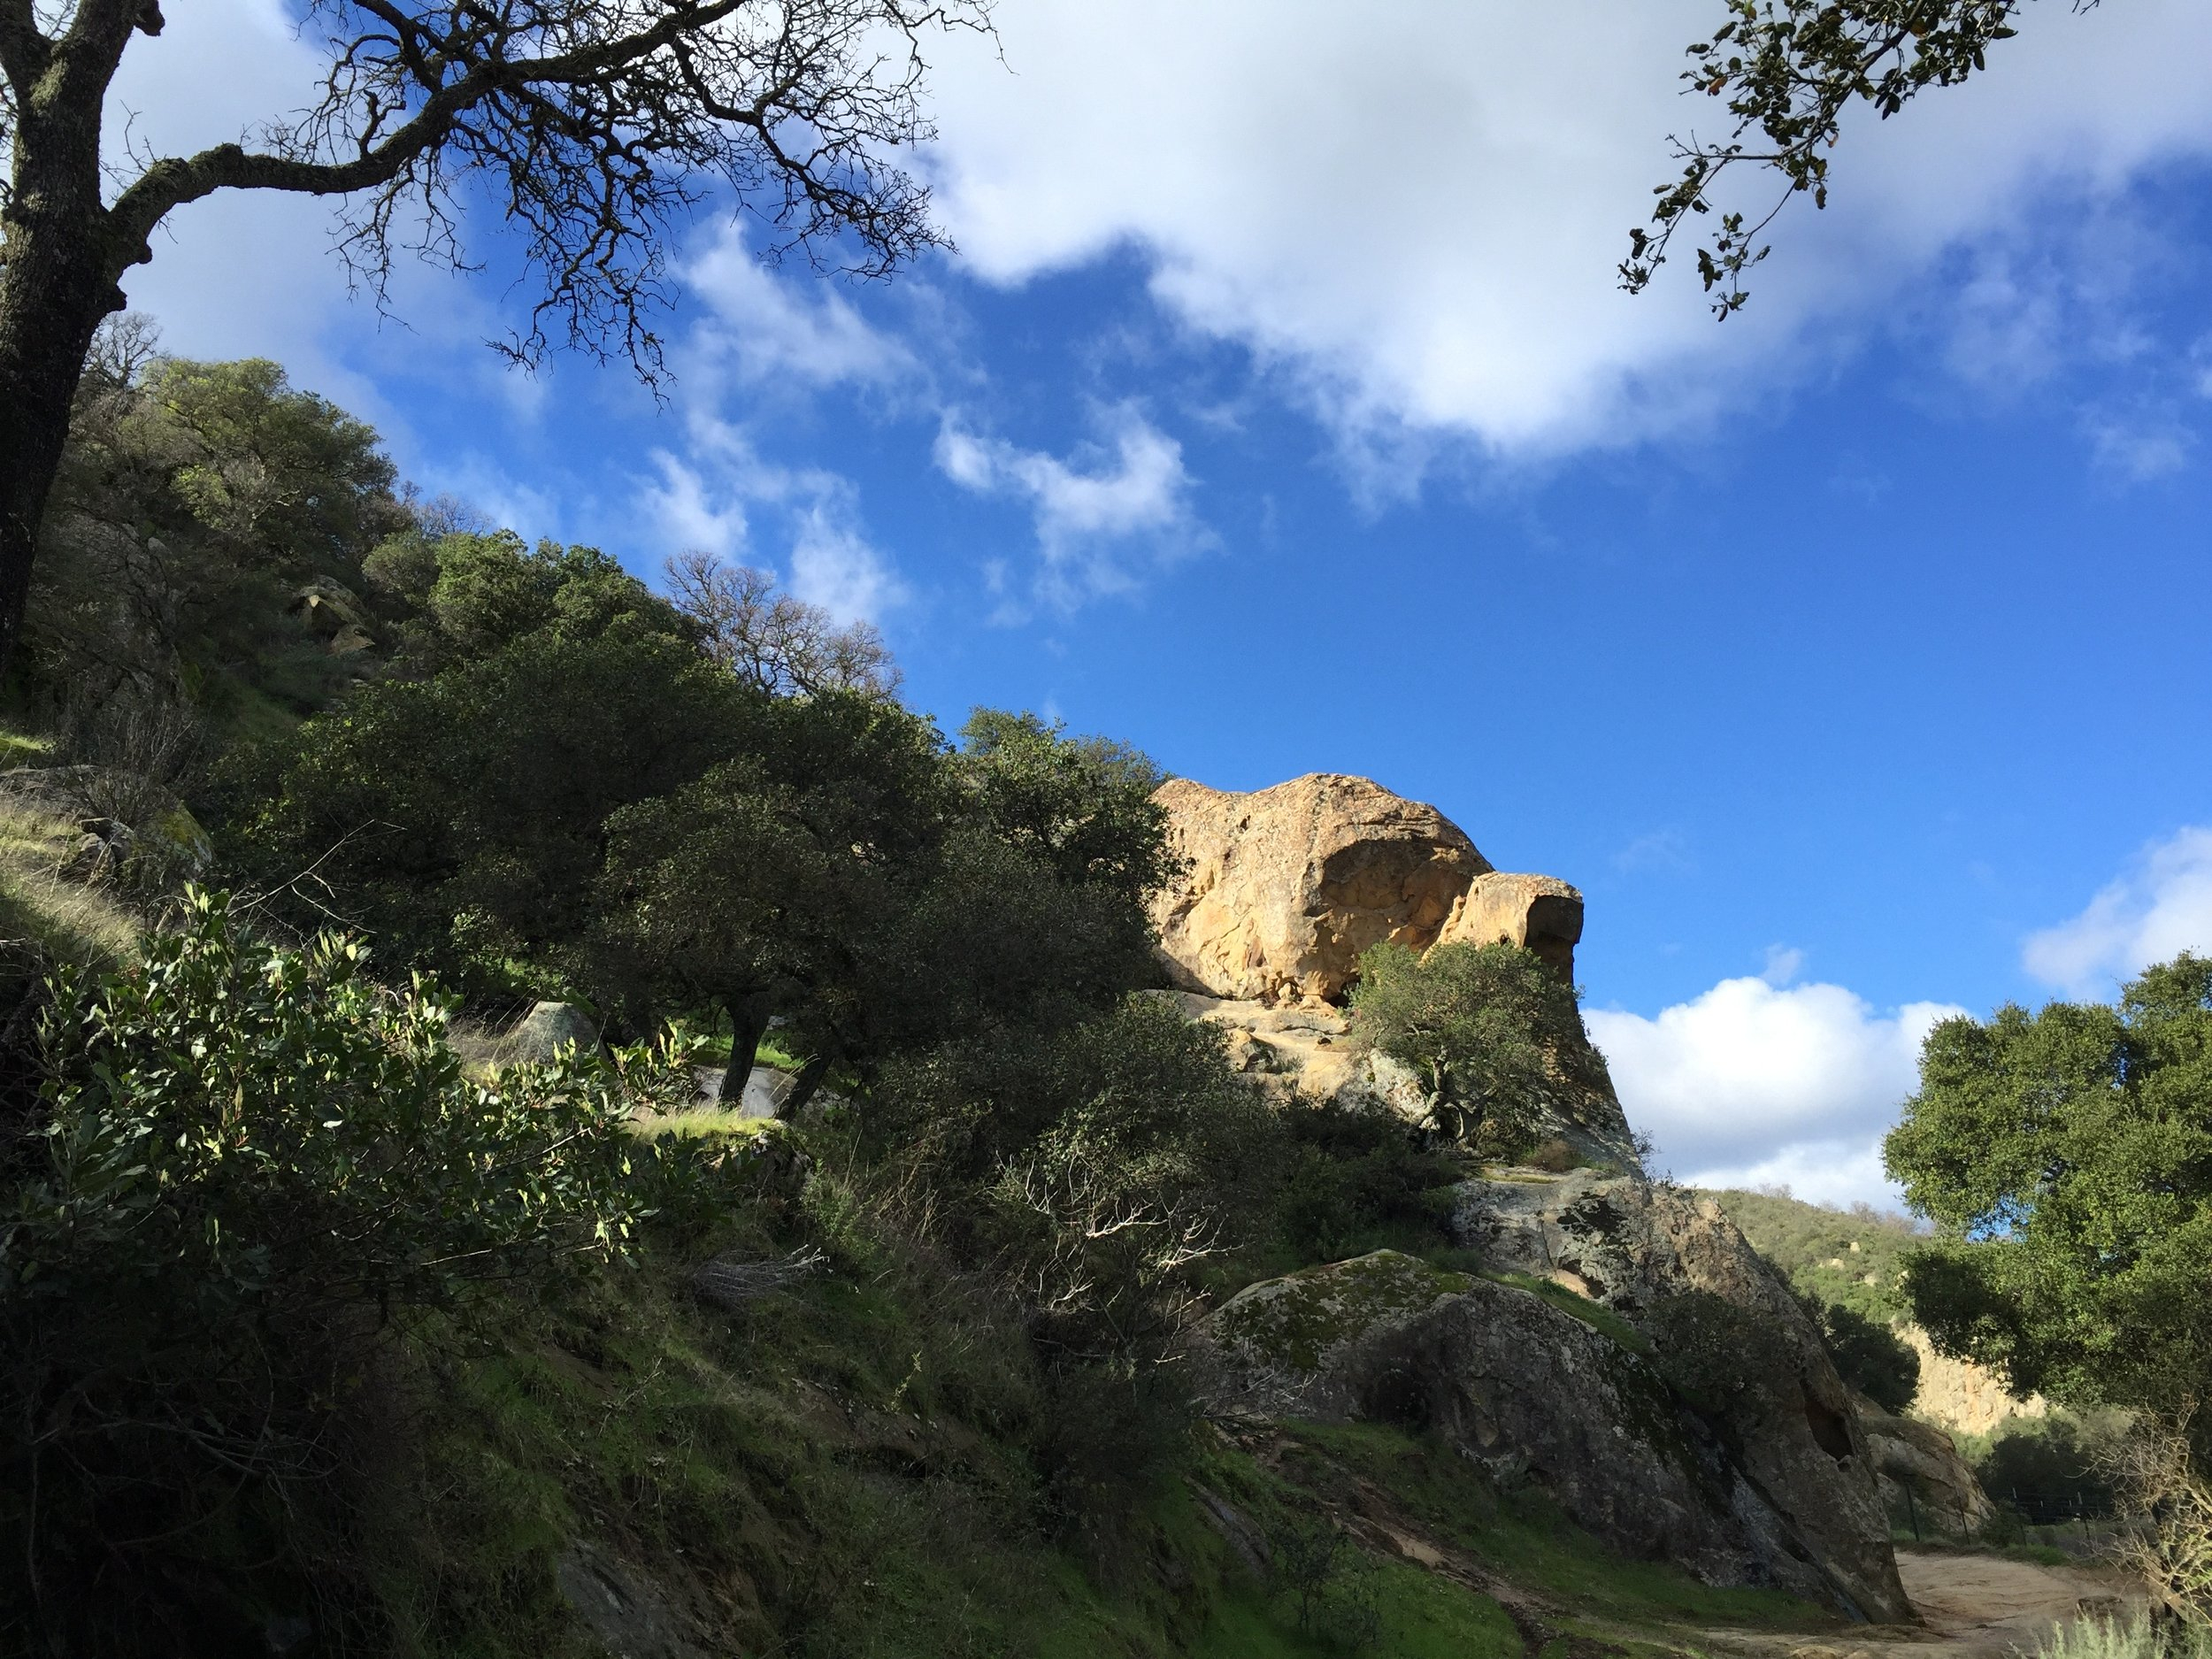 Diablo Foothills, Castle Rock park, this past Tuesday's hike